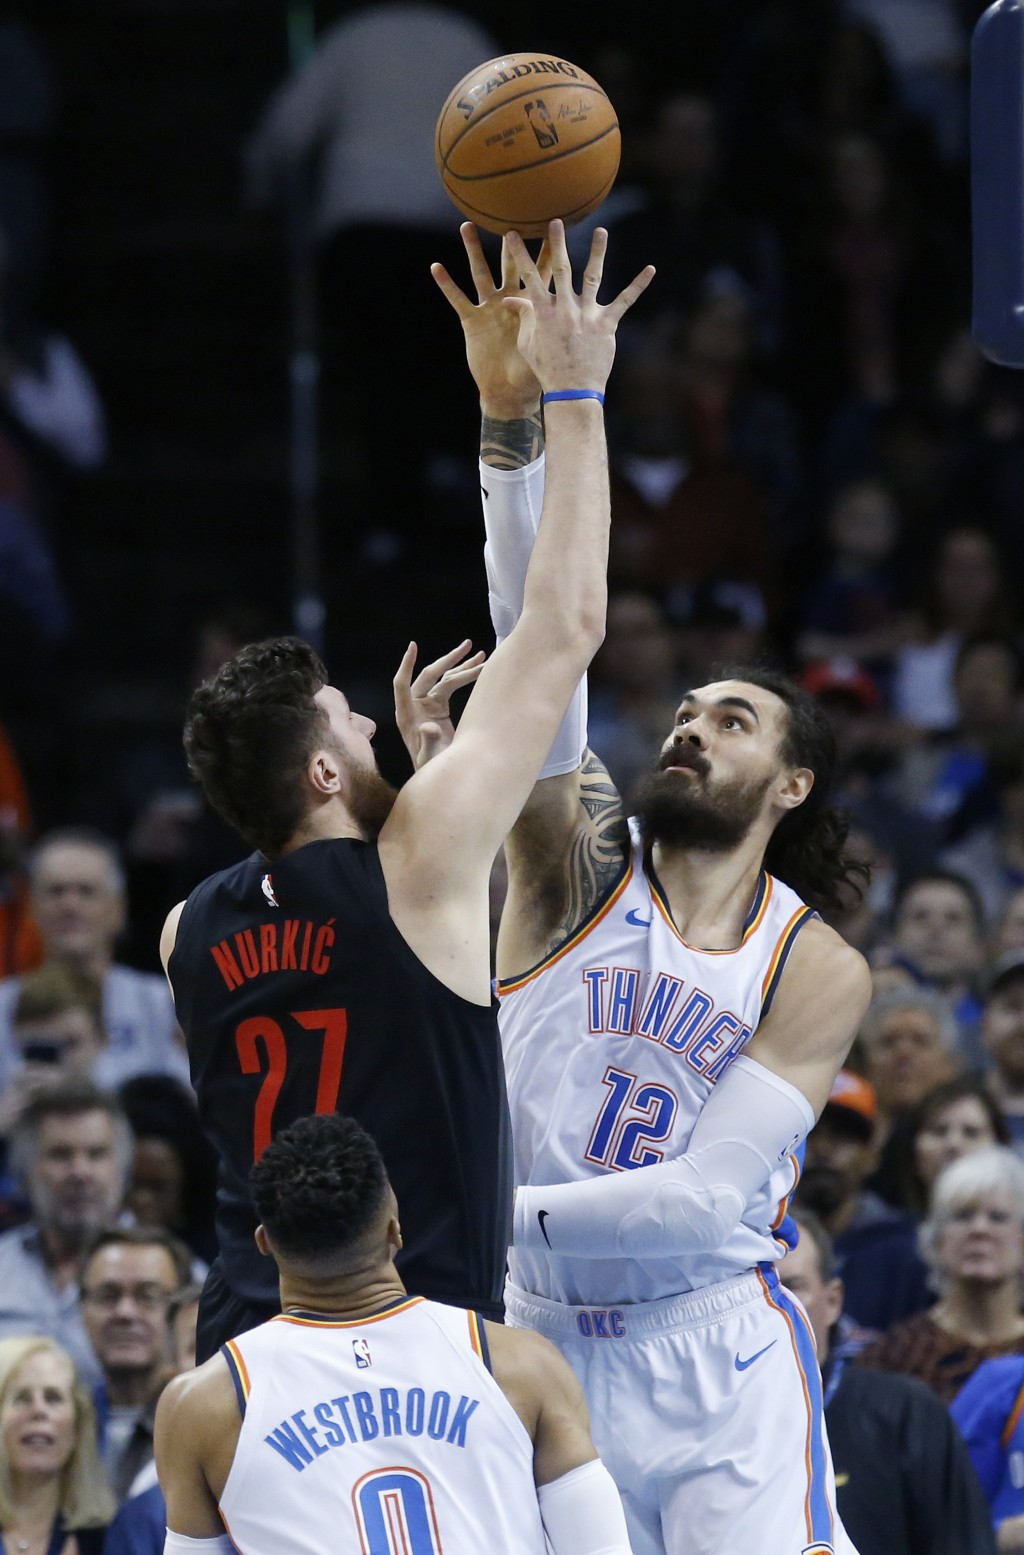 Portland Trail Blazers center Jusuf Nurkic (27) shoots as Oklahoma City Thunder center Steven Adams (12) defends in the first half of an NBA basketbal